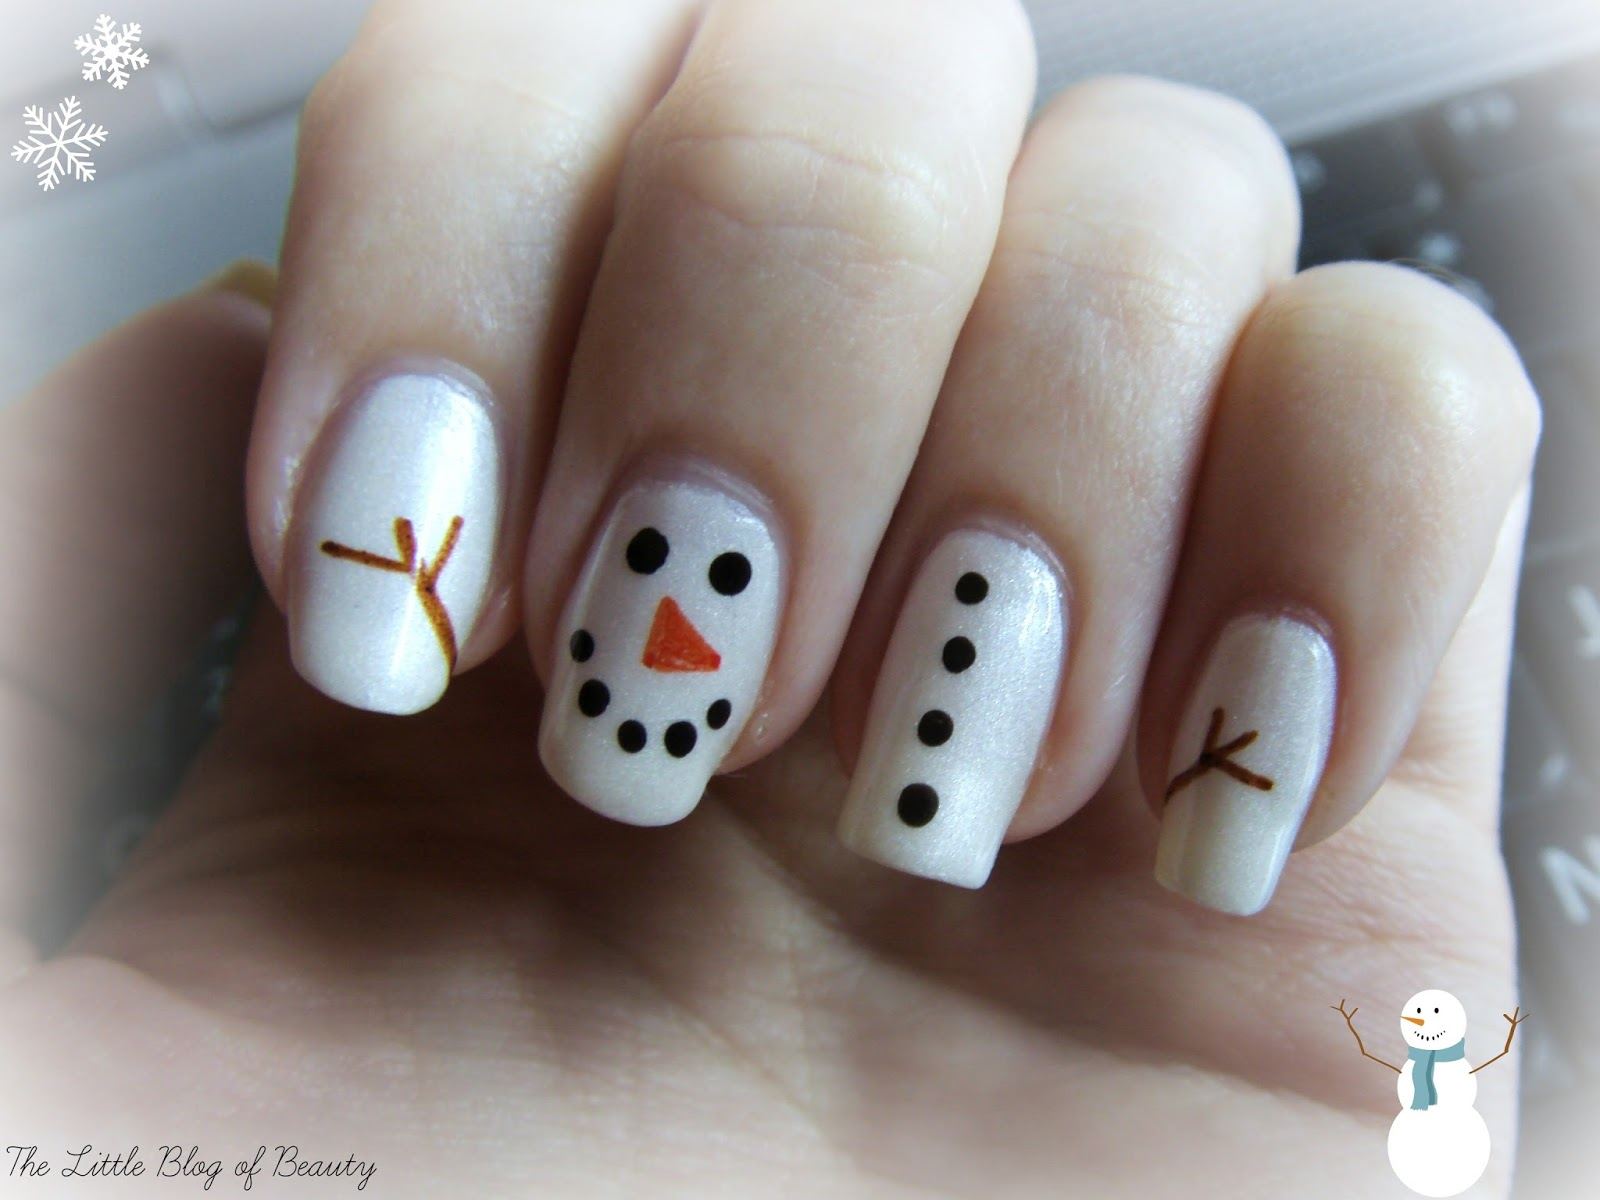 Snowman nail art design youtube nailed it nz snowman nail art its christmas nail art frosty the snowman the little blog of beauty nail art snowman prinsesfo Images